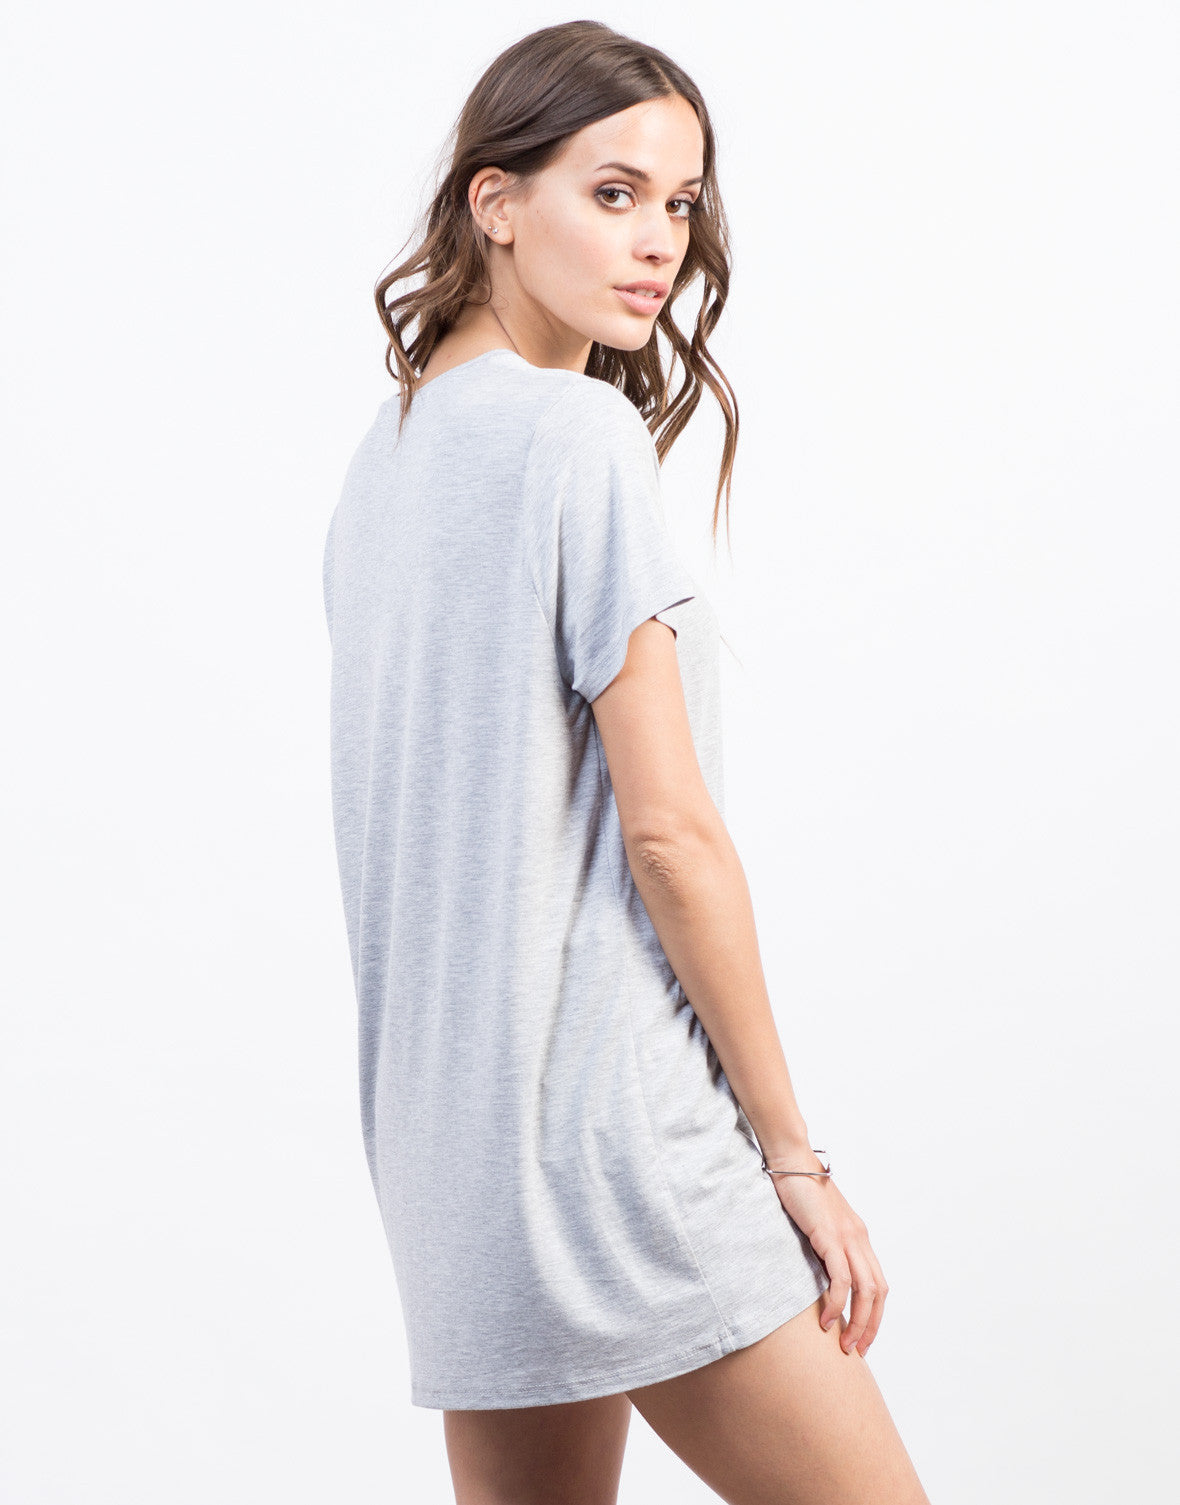 Back View of Ovesized Tunic Tee